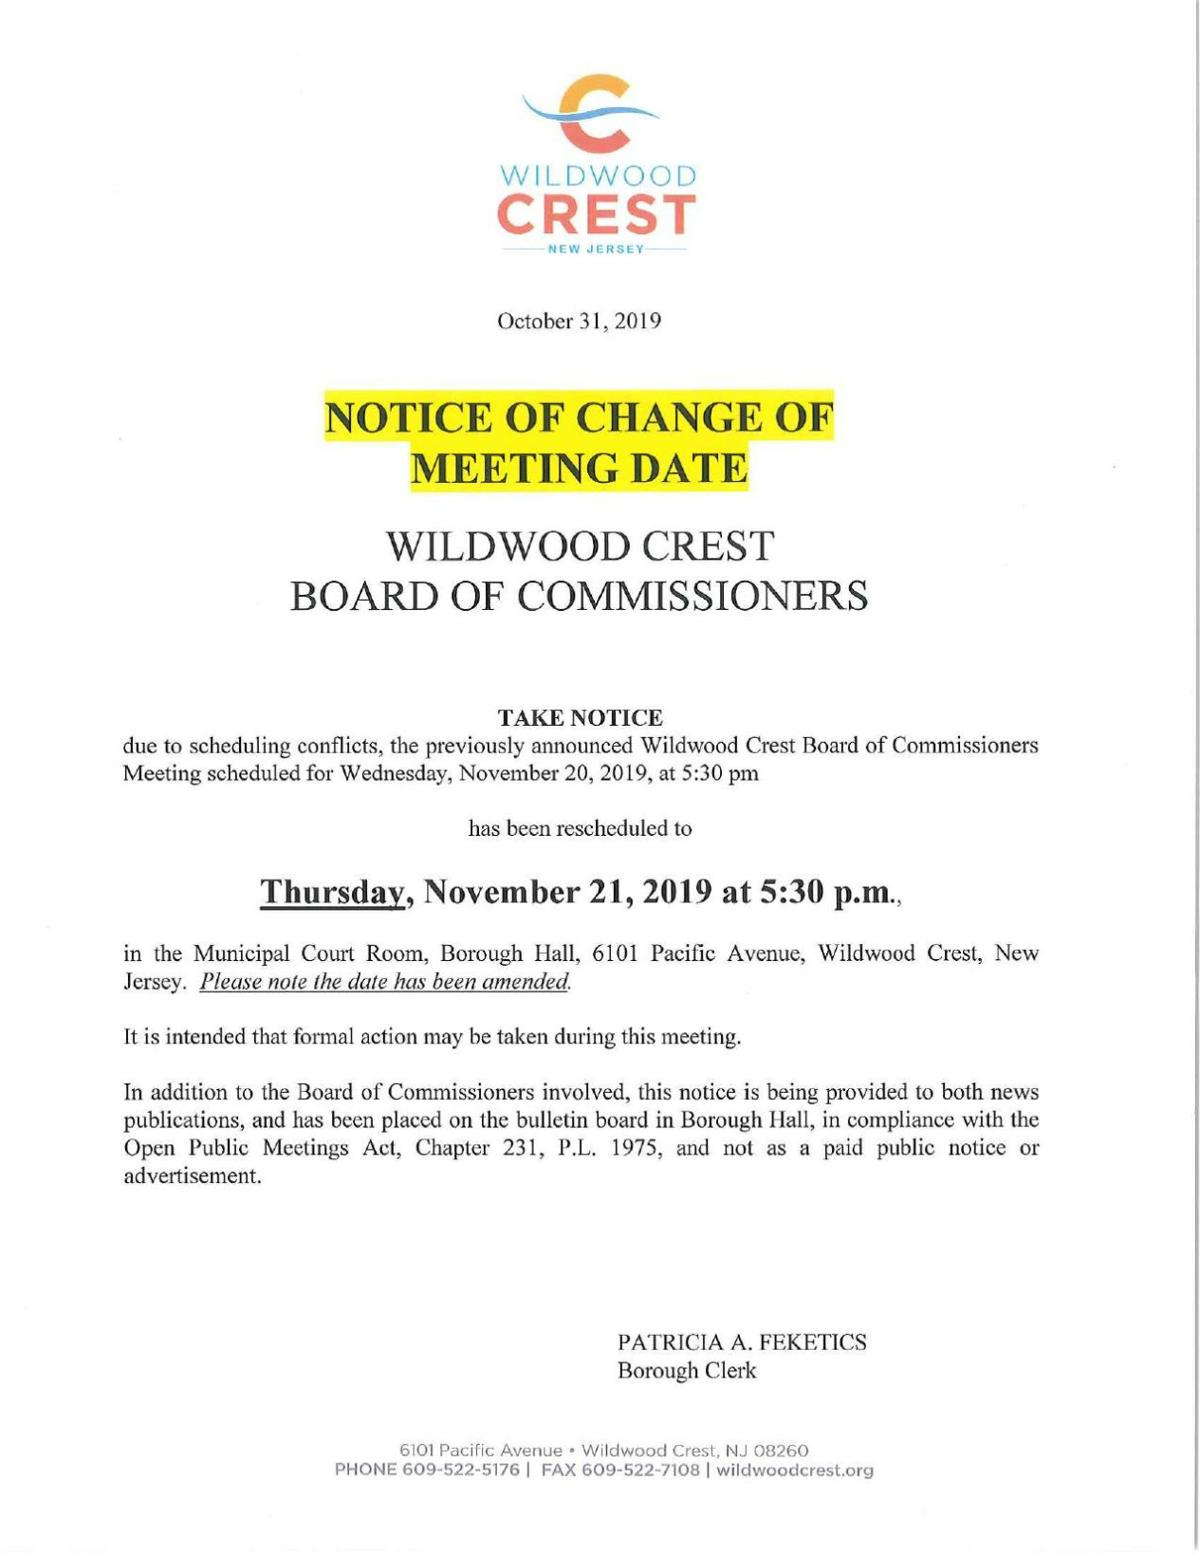 Wildwood Crest Board of Commissioners Meeting Date Change